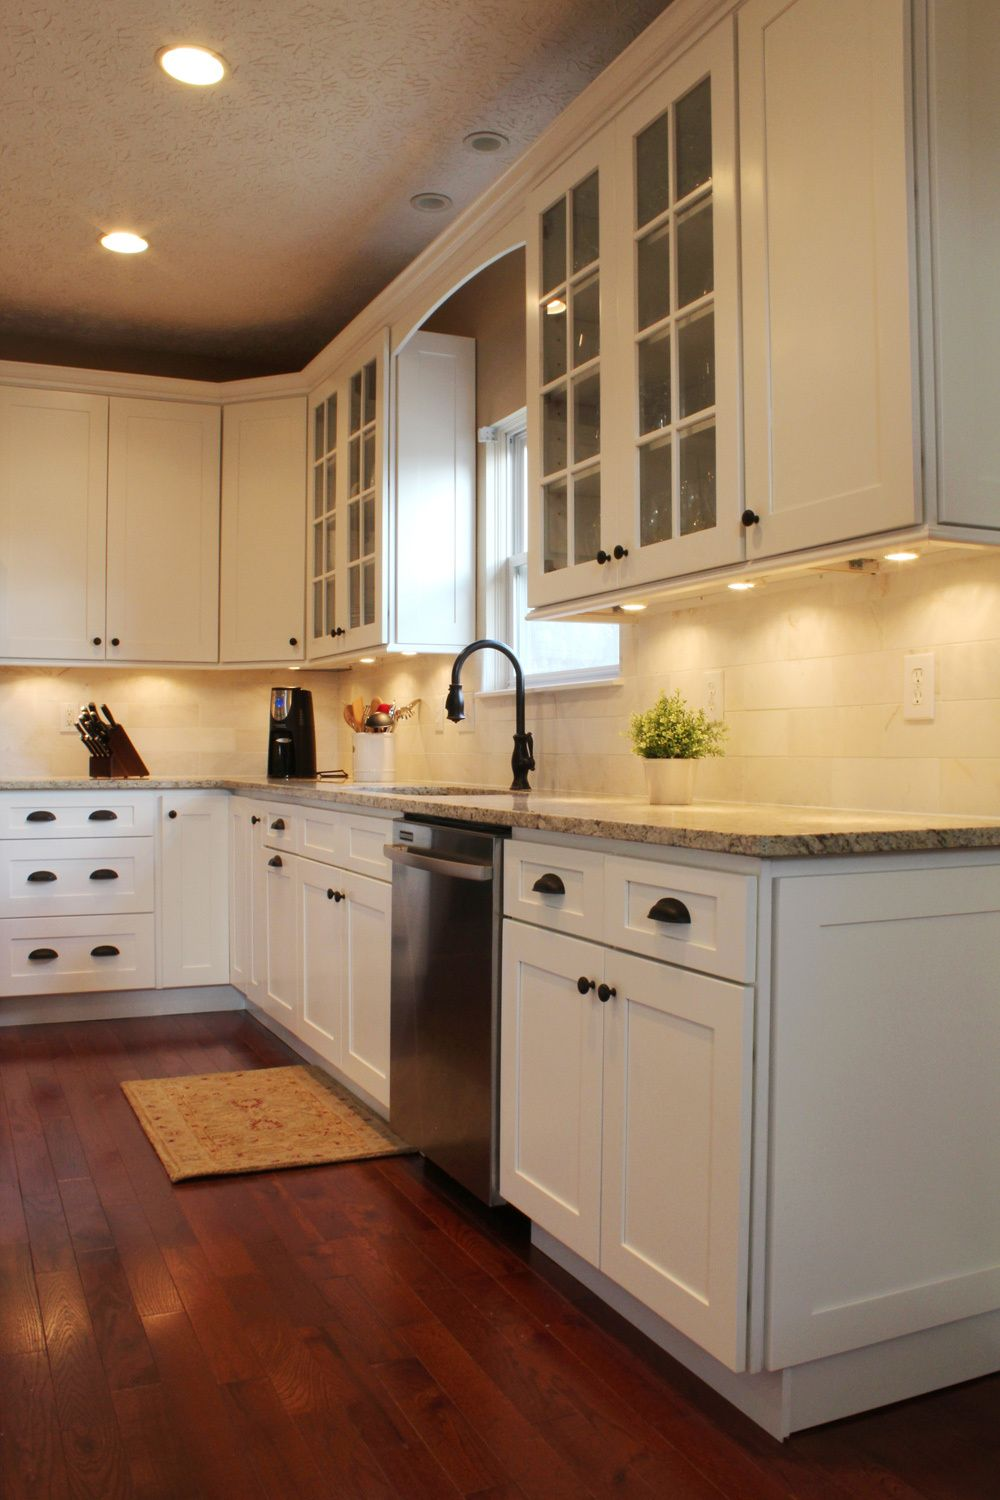 Kitchen Remodel Powell Ice White Shaker Kitchen Cabinets Columbus Oh Semro Designs 1 Shaker Style Kitchen Cabinets White Shaker Kitchen Kitchen Cabinet Remodel